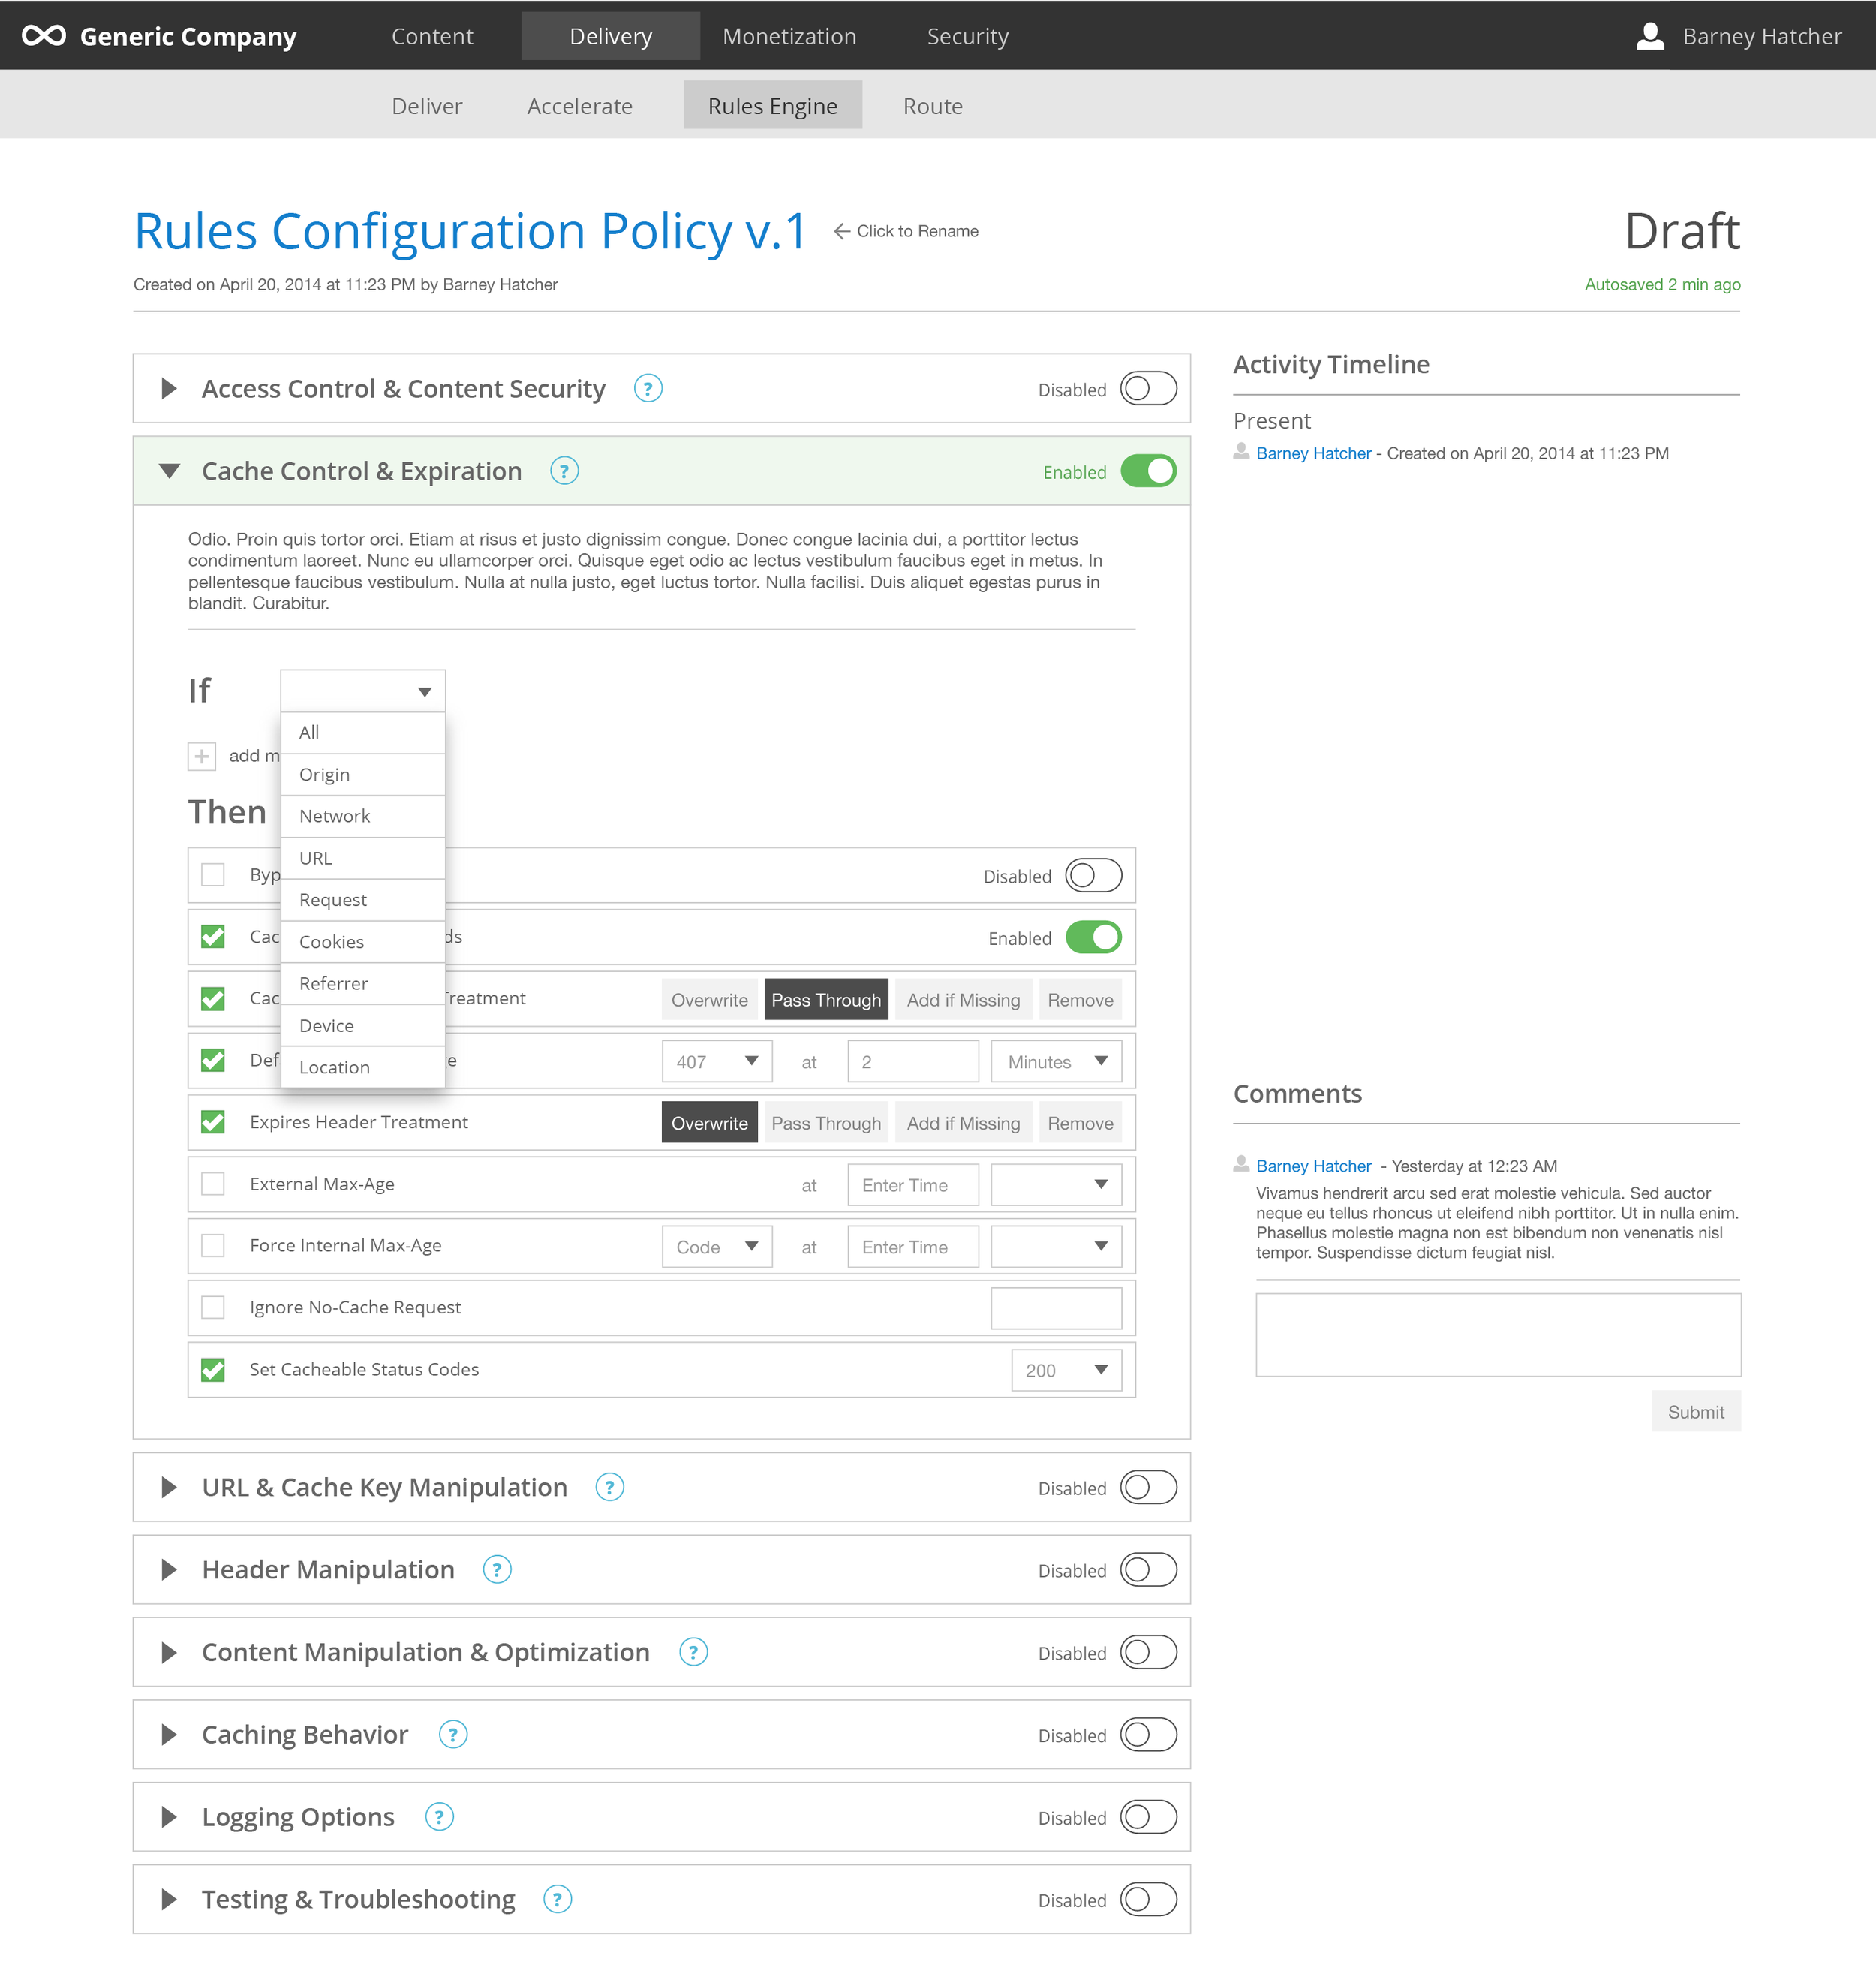 ux-rules-engine-v1_configuration policy-draft-1 enabled-features populated-match dropdown.png